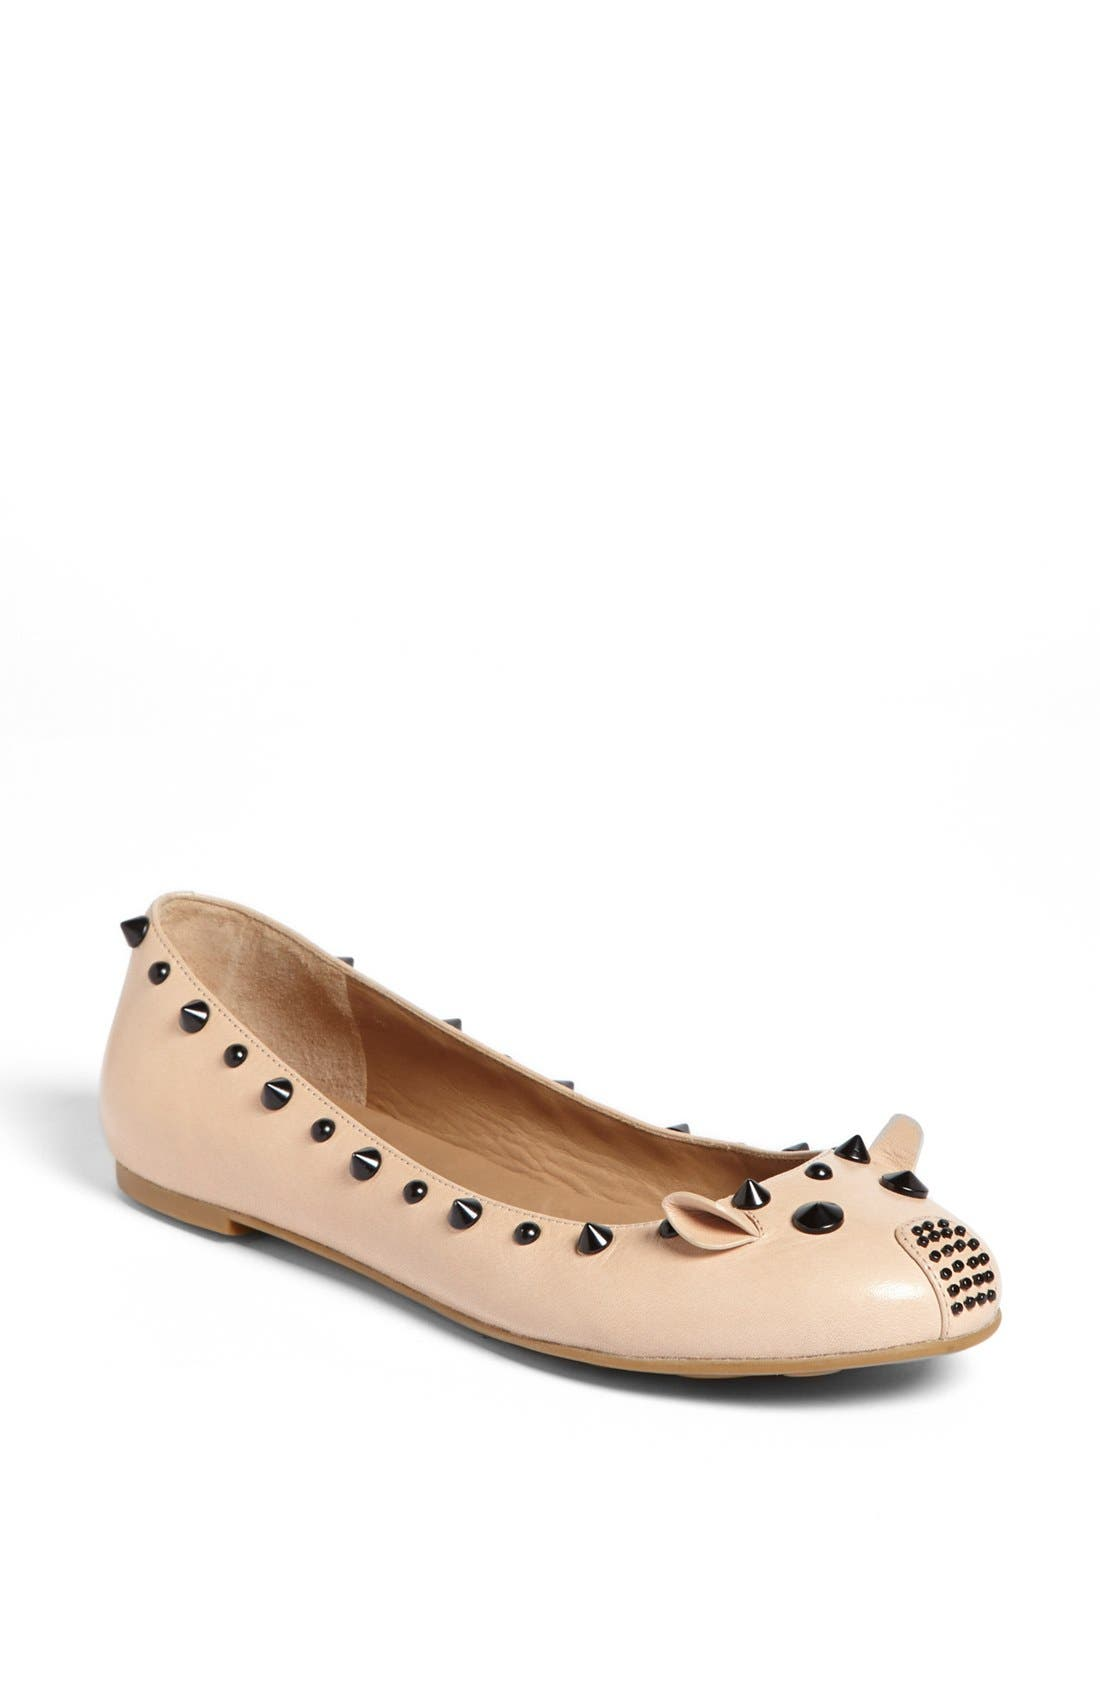 Alternate Image 1 Selected - MARC BY MARC JACOBS 'Punk Mouse' Ballerina Flat